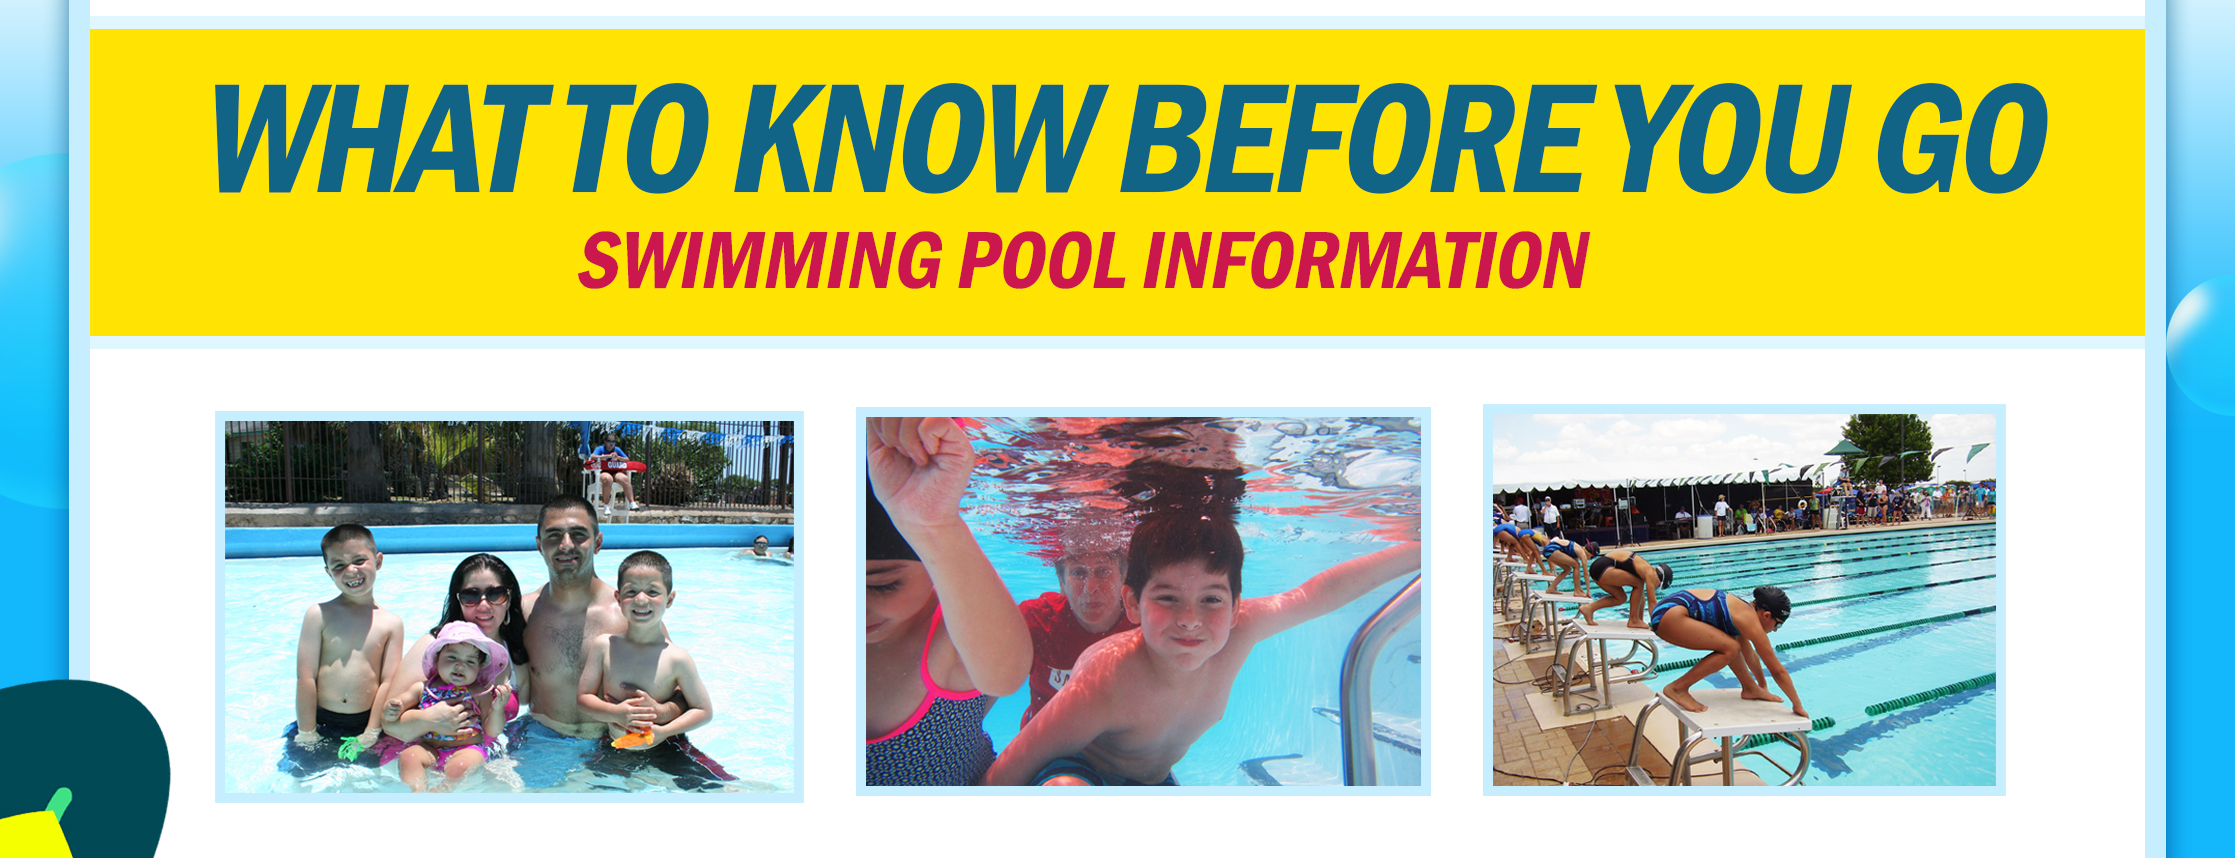 What to know before you go: Swimming Pool Information